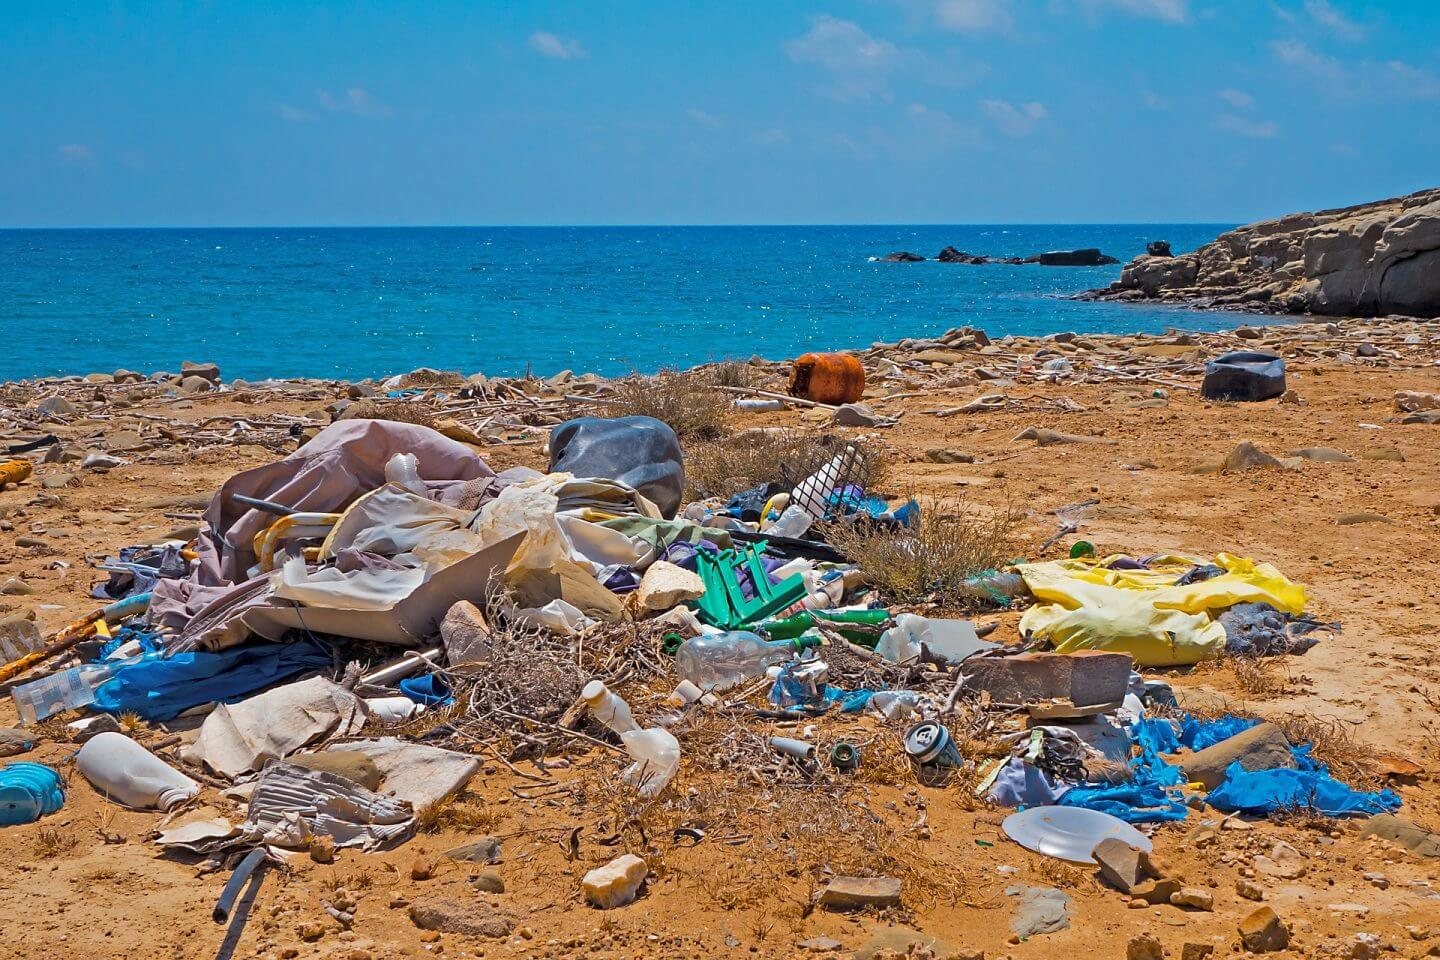 image of waste on beach - reducing waste when travelling